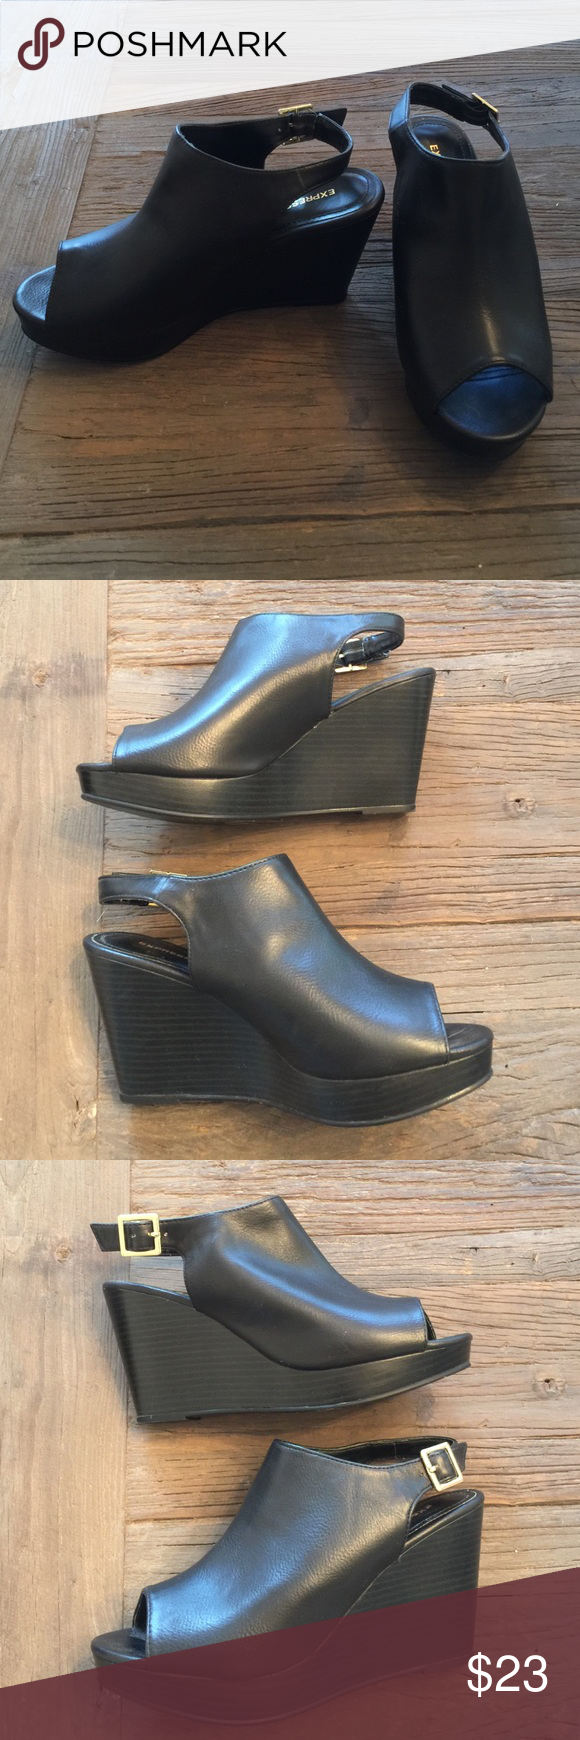 EXPRESS bootie wedges EUC -worn about 5 times. Very comfortable wedge heel. Faux black leather uppers. Sling back style. ❌no trades or paypal❌ Express Shoes